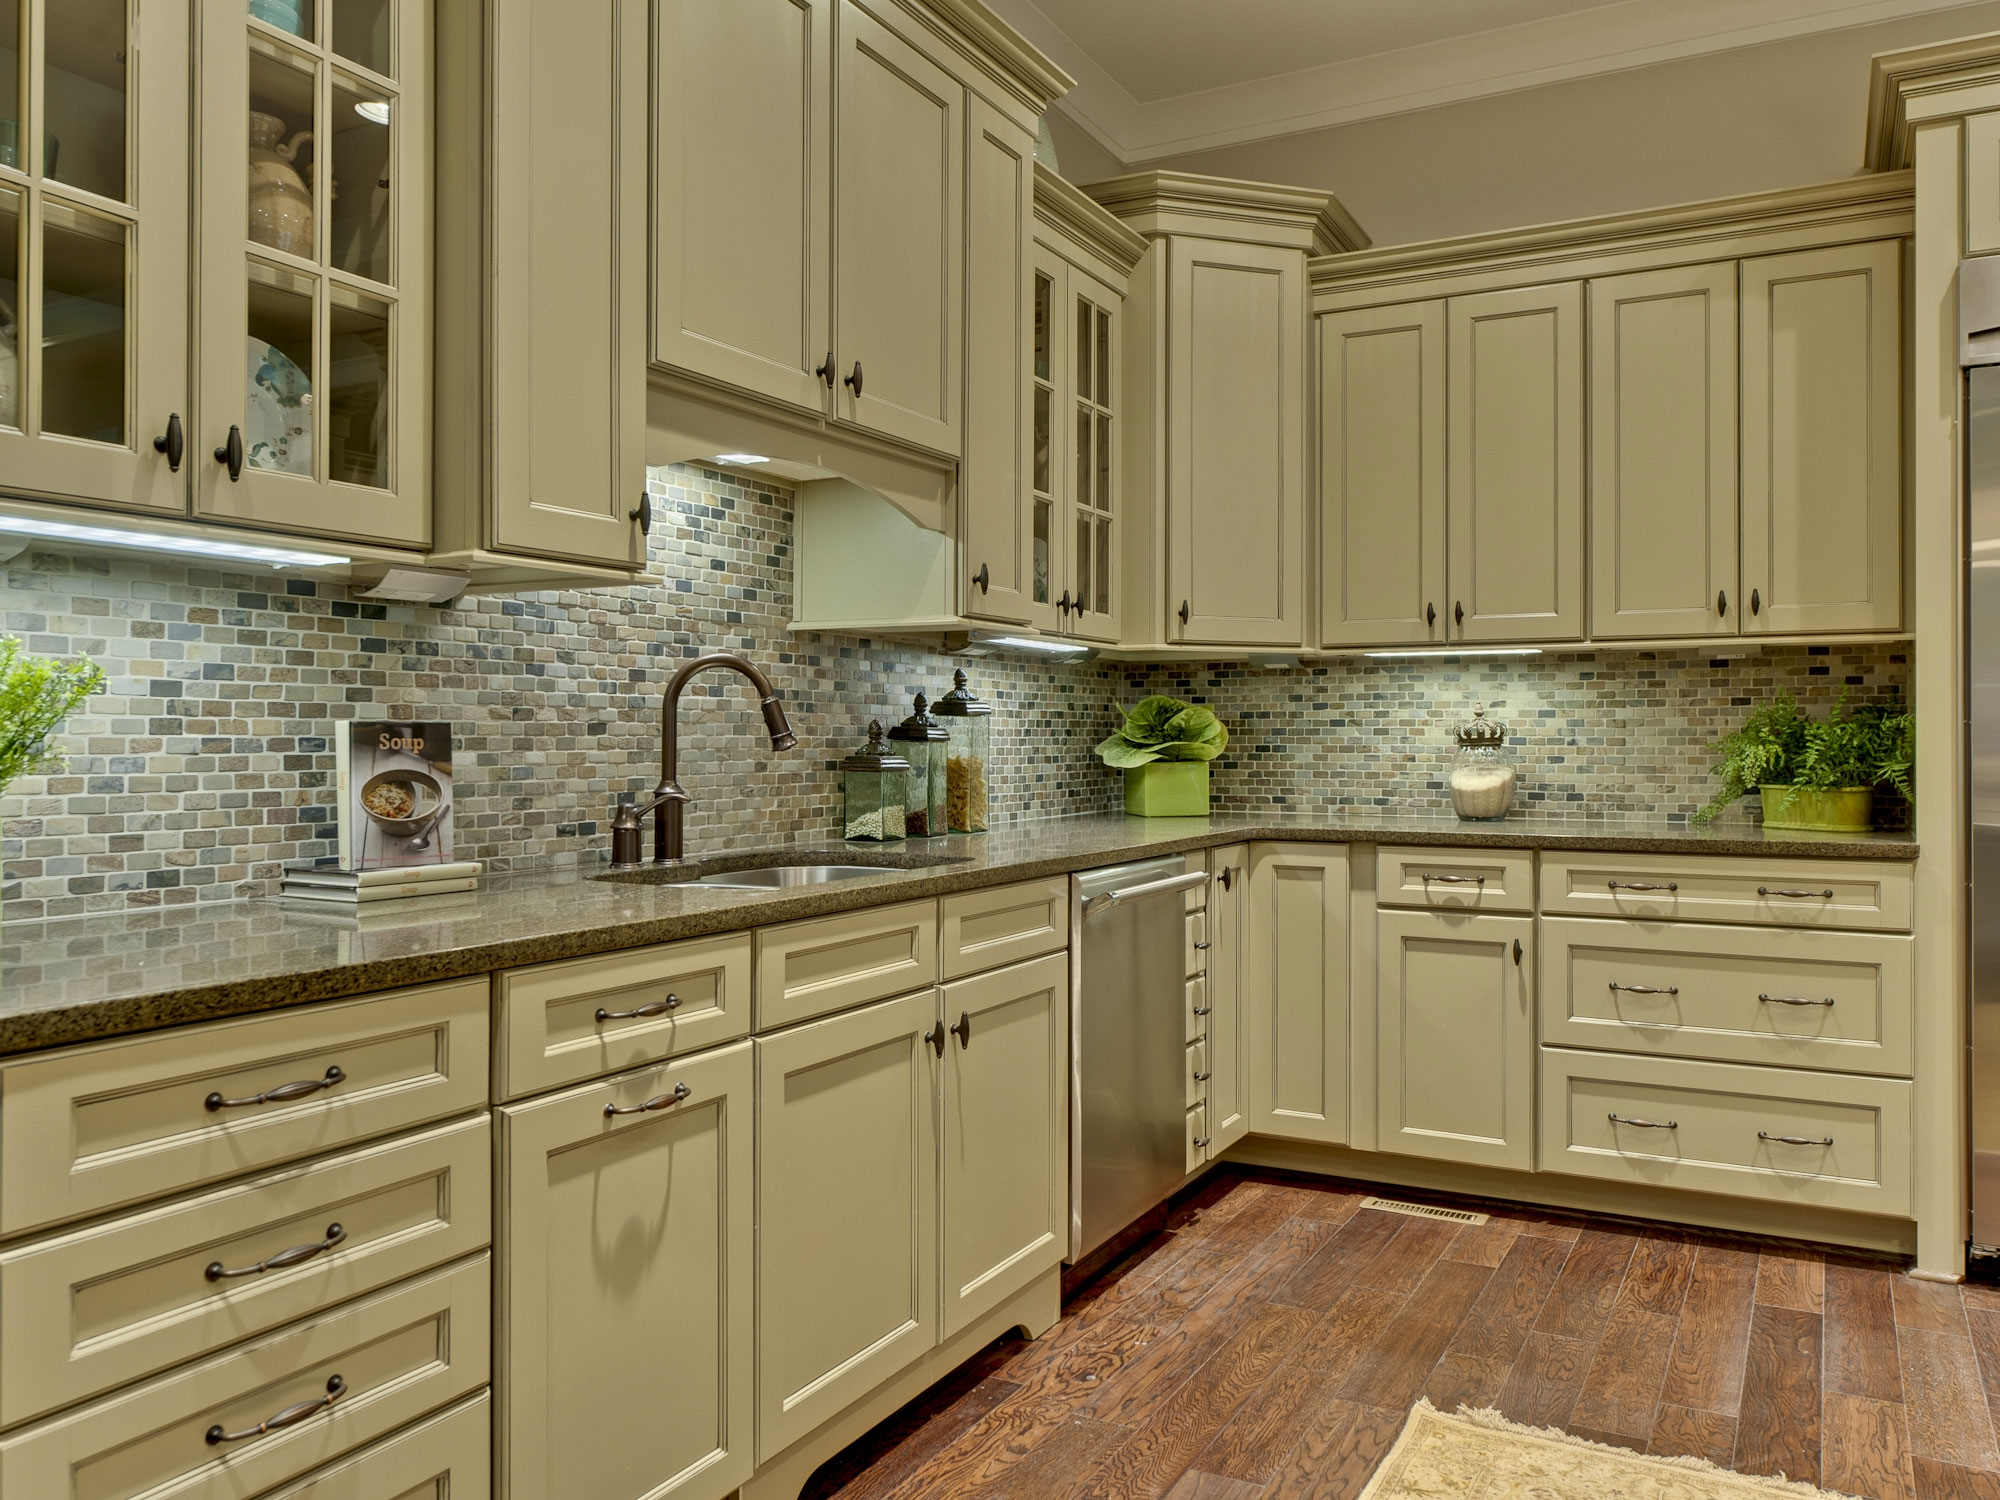 Pictures Of Olive Green Kitchen Cabinets